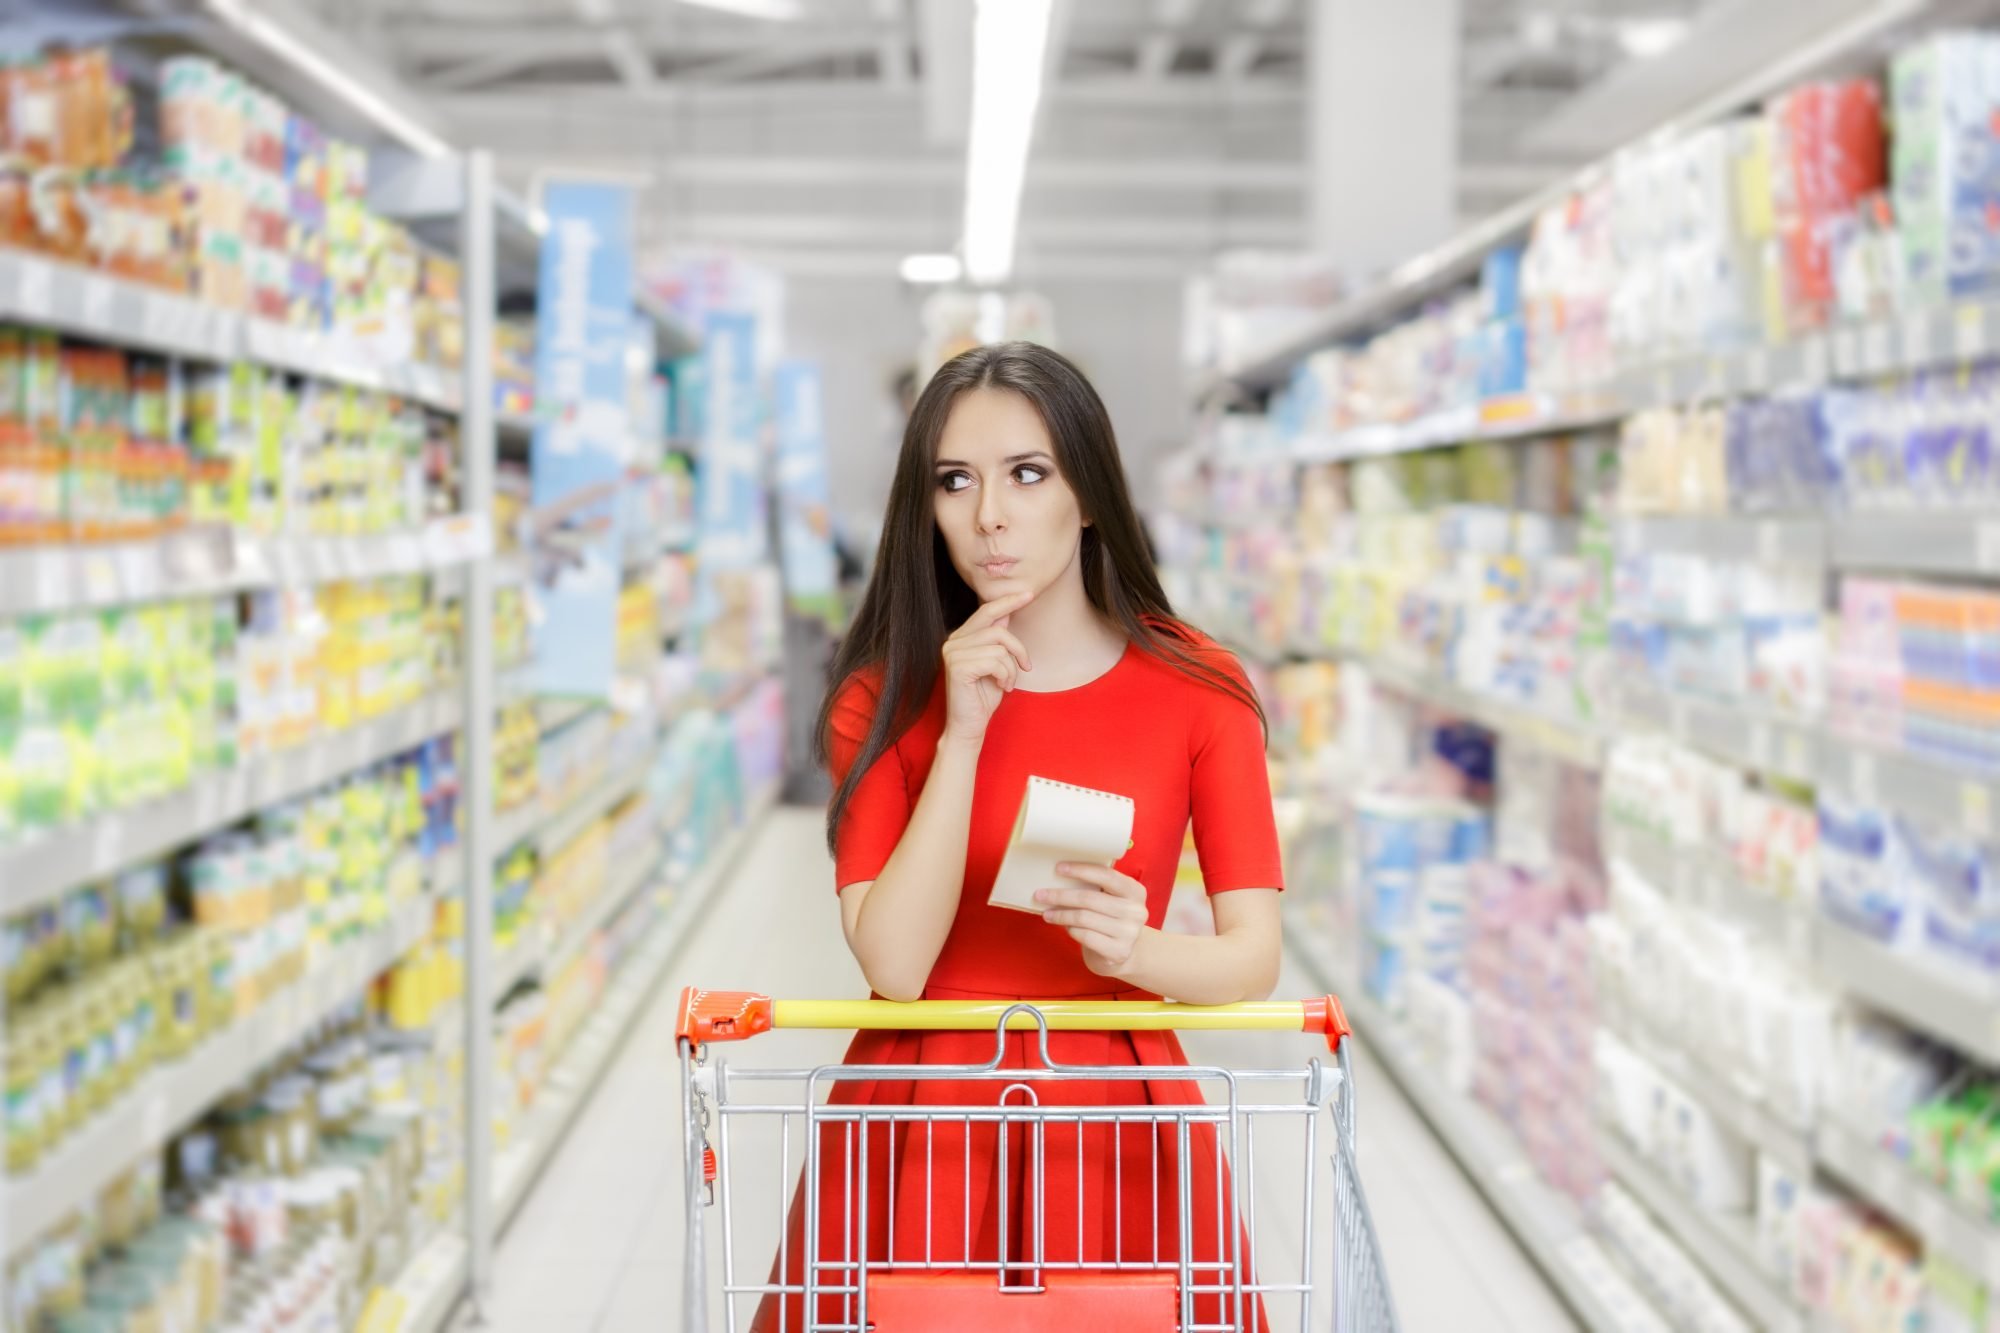 5 Grocery Shopping Mistakes You've Got to Stop Making